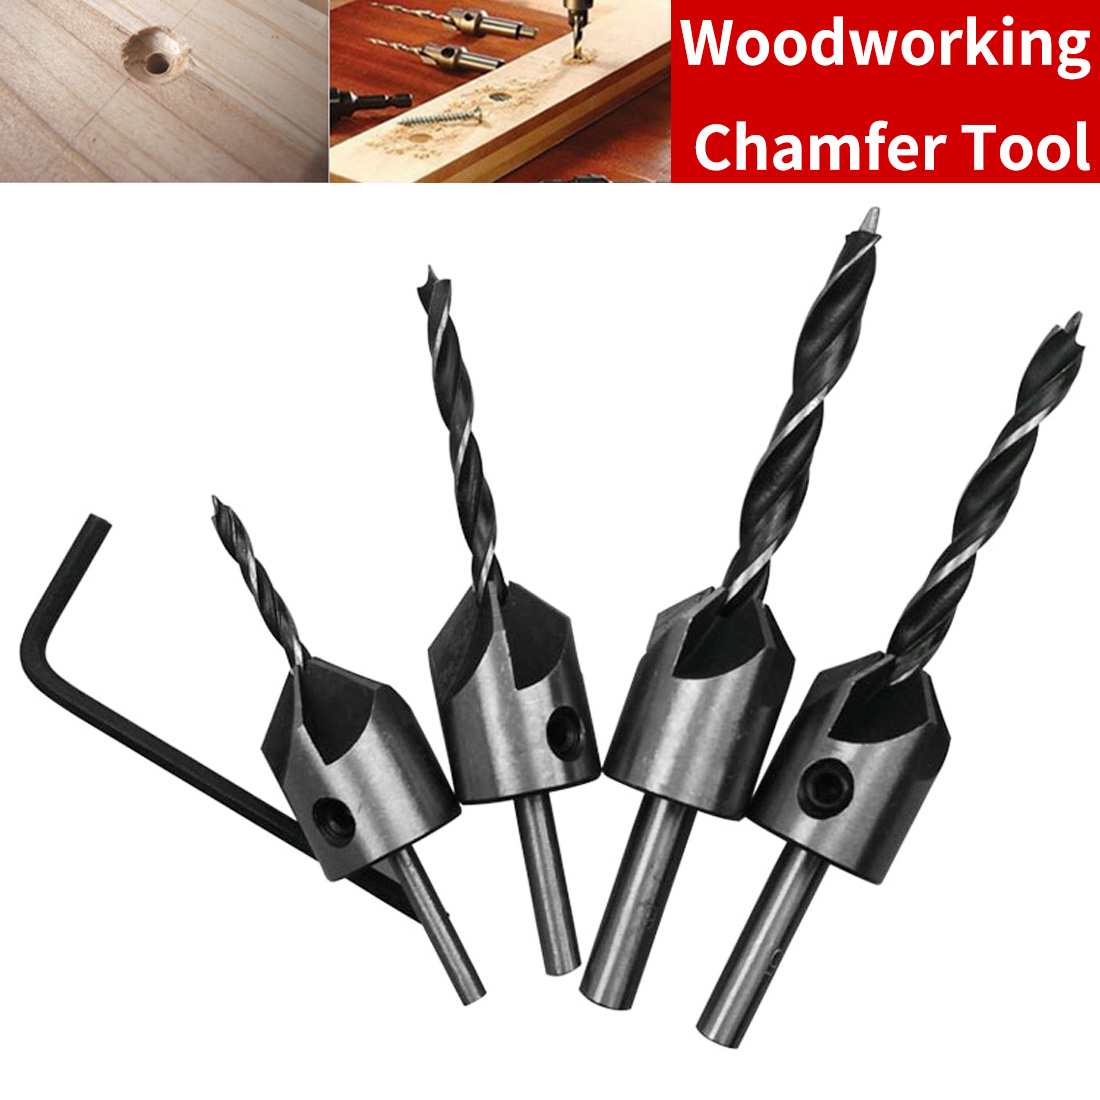 HSS 5 Flute Countersink Drill Bit Set Screw Woodworking Drill Press Set Reamer Screw Wood Tool 3mm 4mm 5mm 6mm 4pcs/set